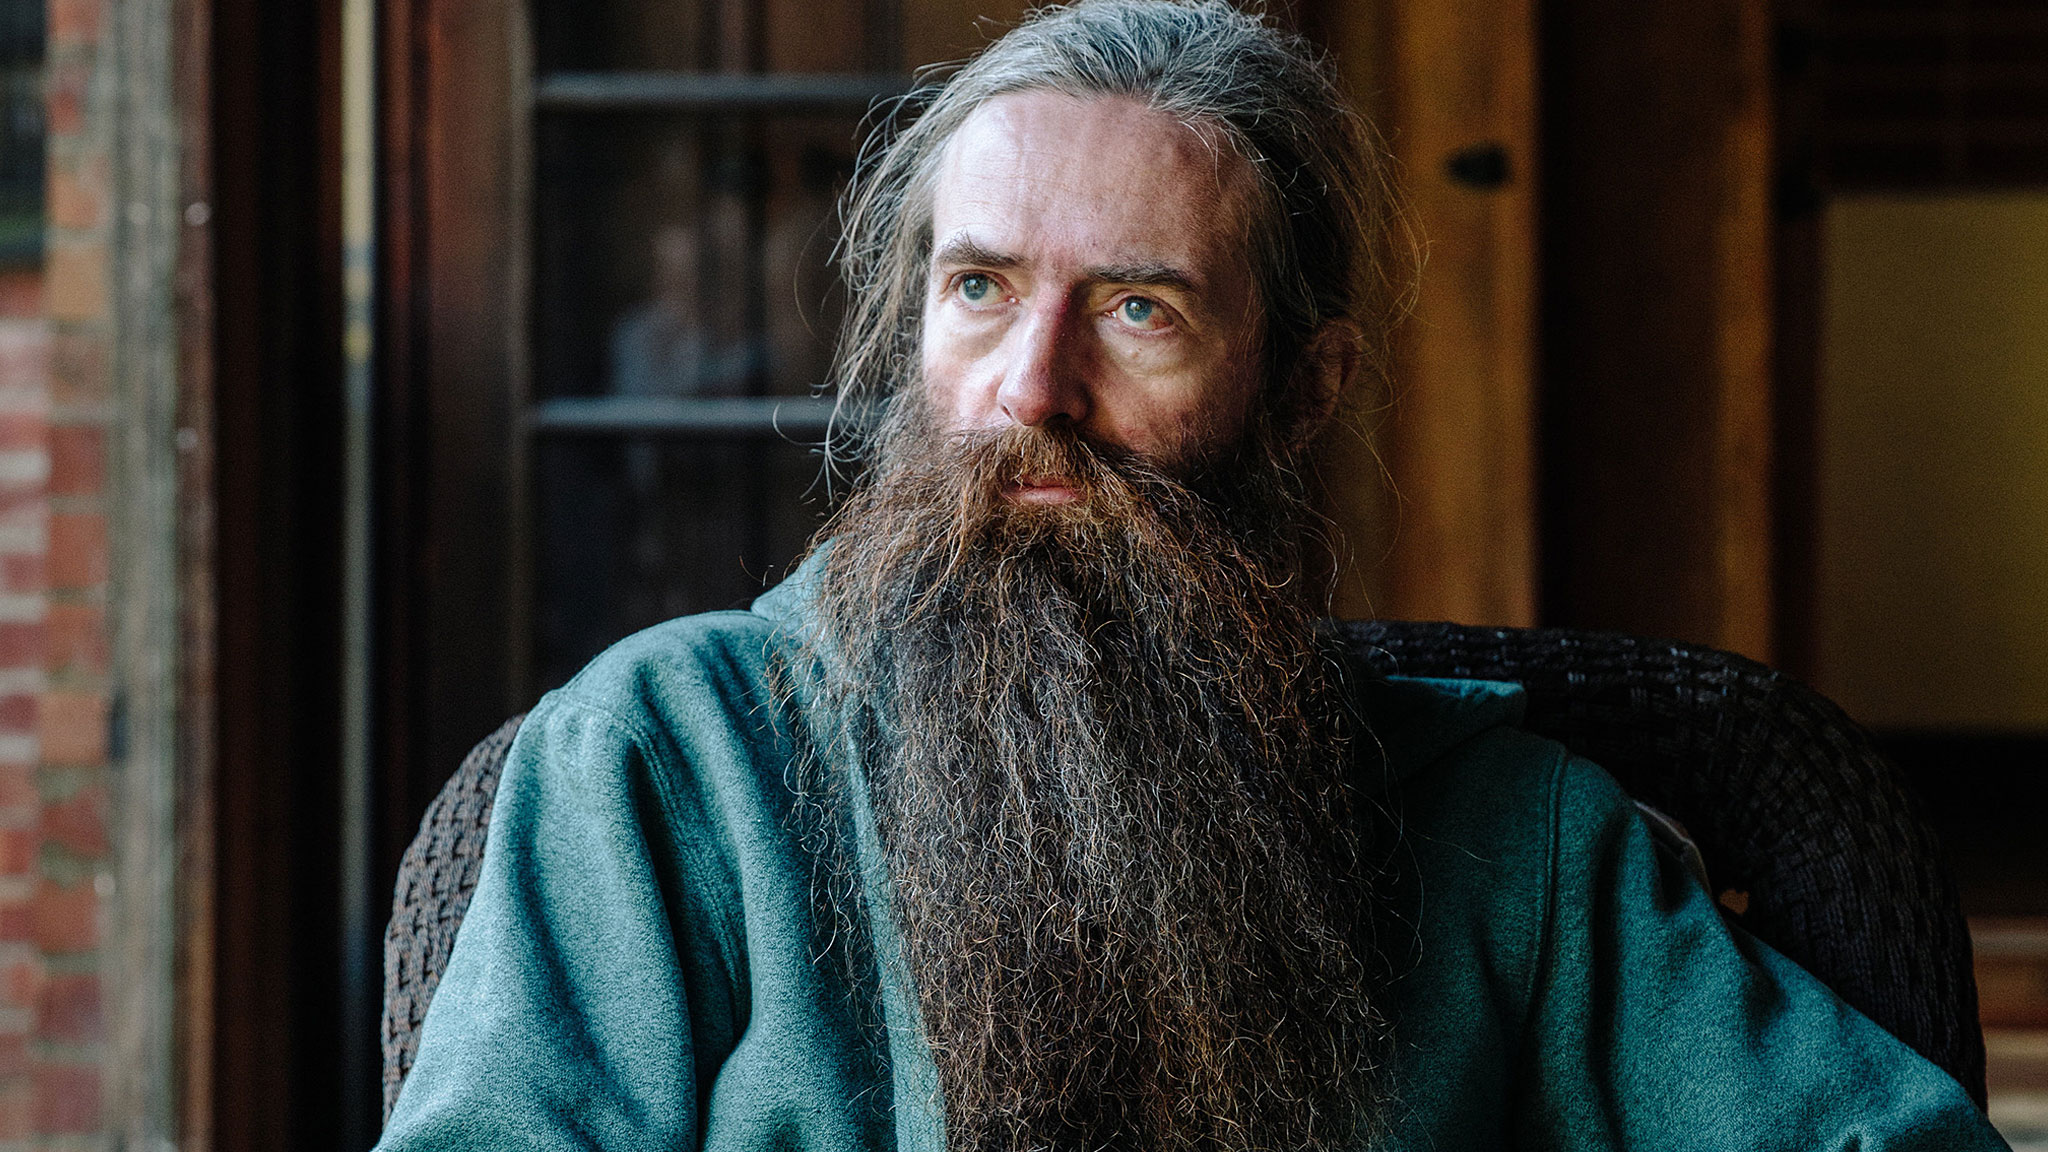 aubrey de grey  scientist who says humans can live for 1 000 years